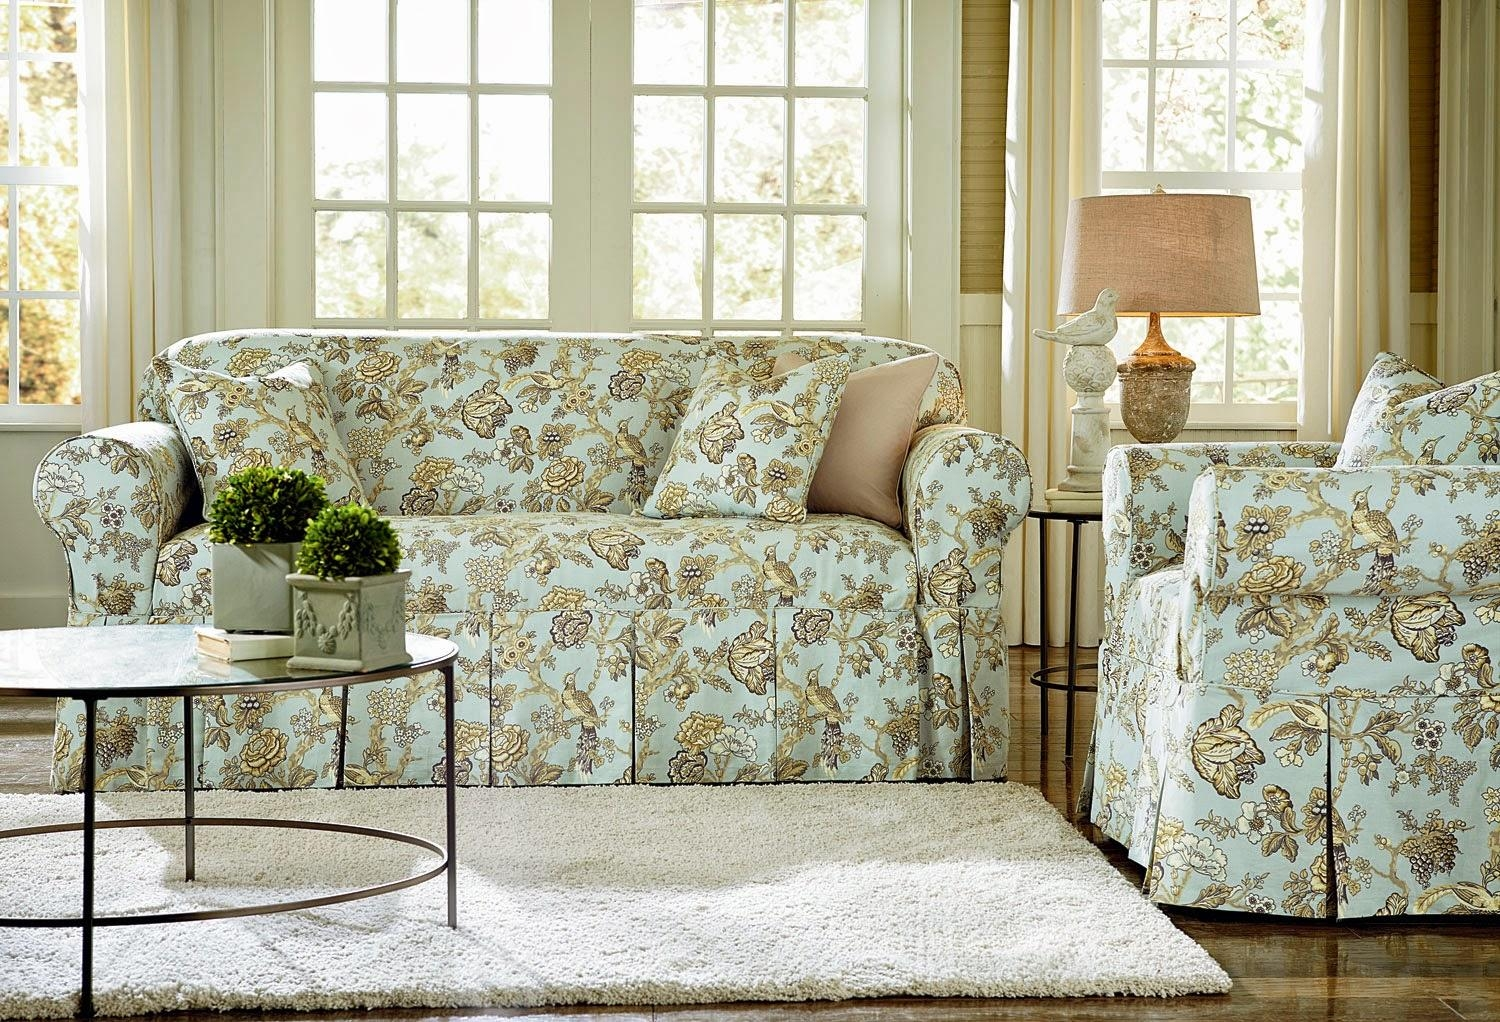 Sure Fit Slipcovers Blog In Floral Sofa Slipcovers (Image 20 of 20)